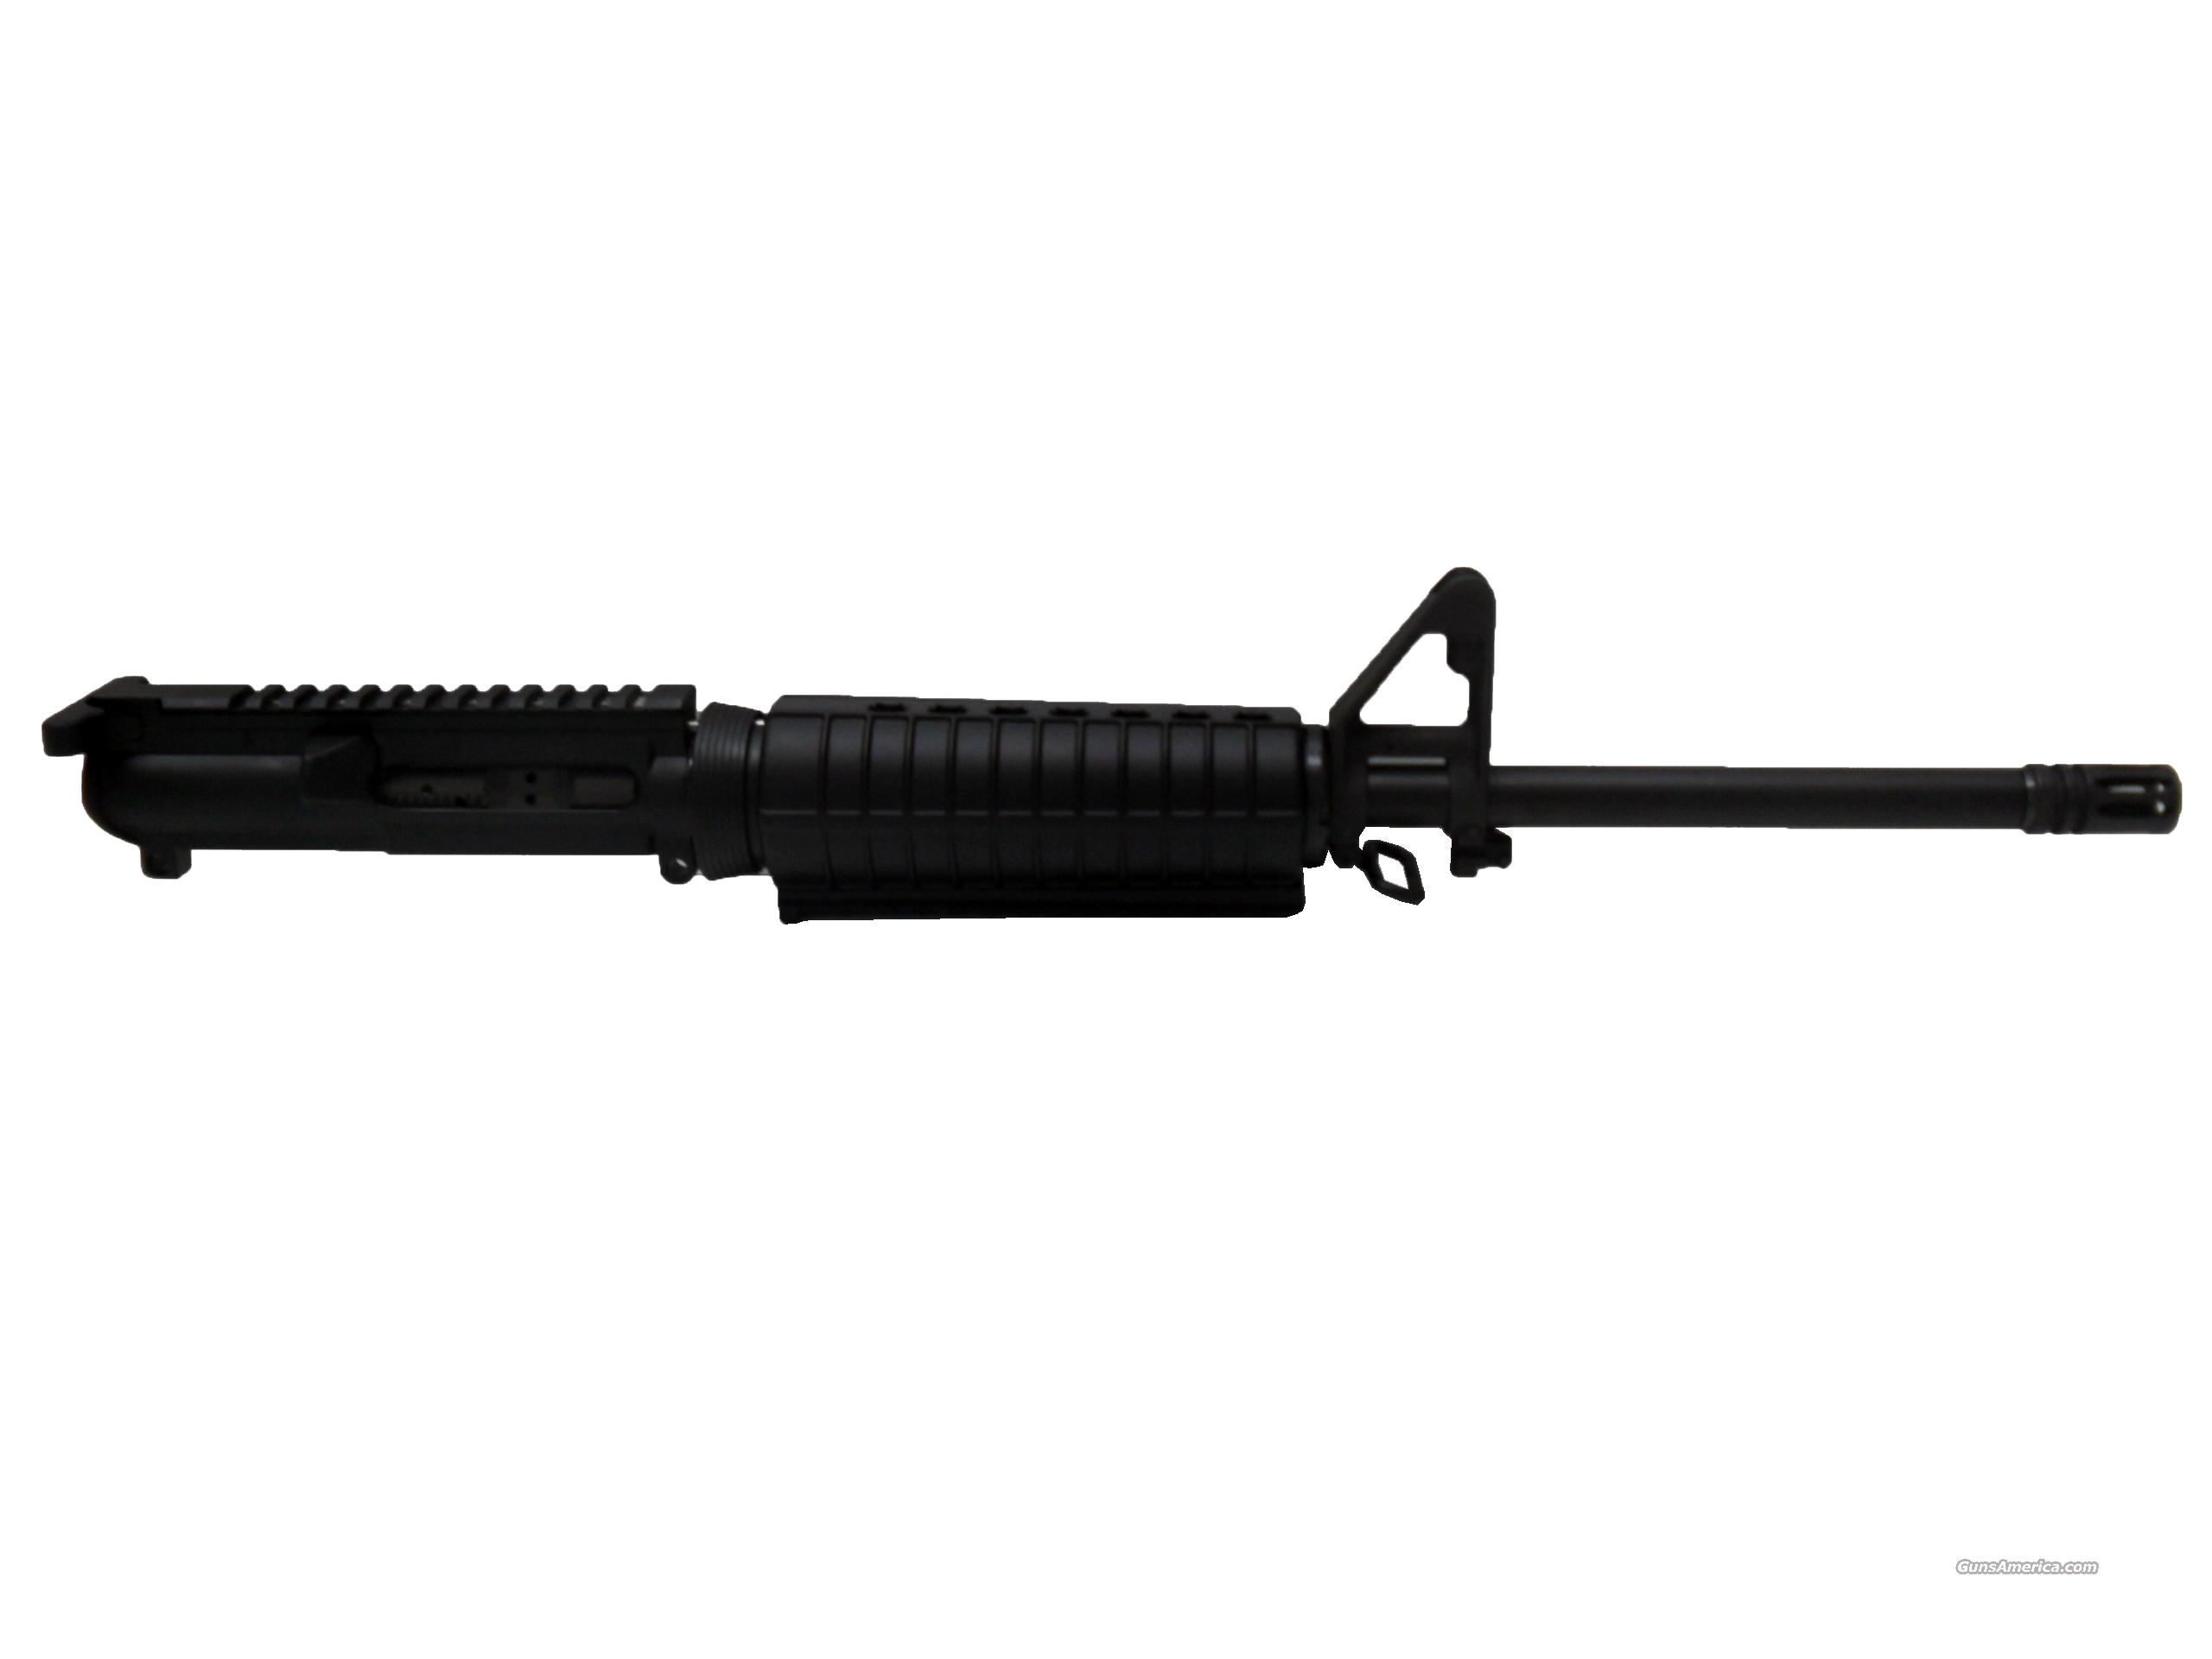 Smith & Wesson AR Upper Assembly 5.56mm  Guns > Rifles > Smith & Wesson Rifles > M&P